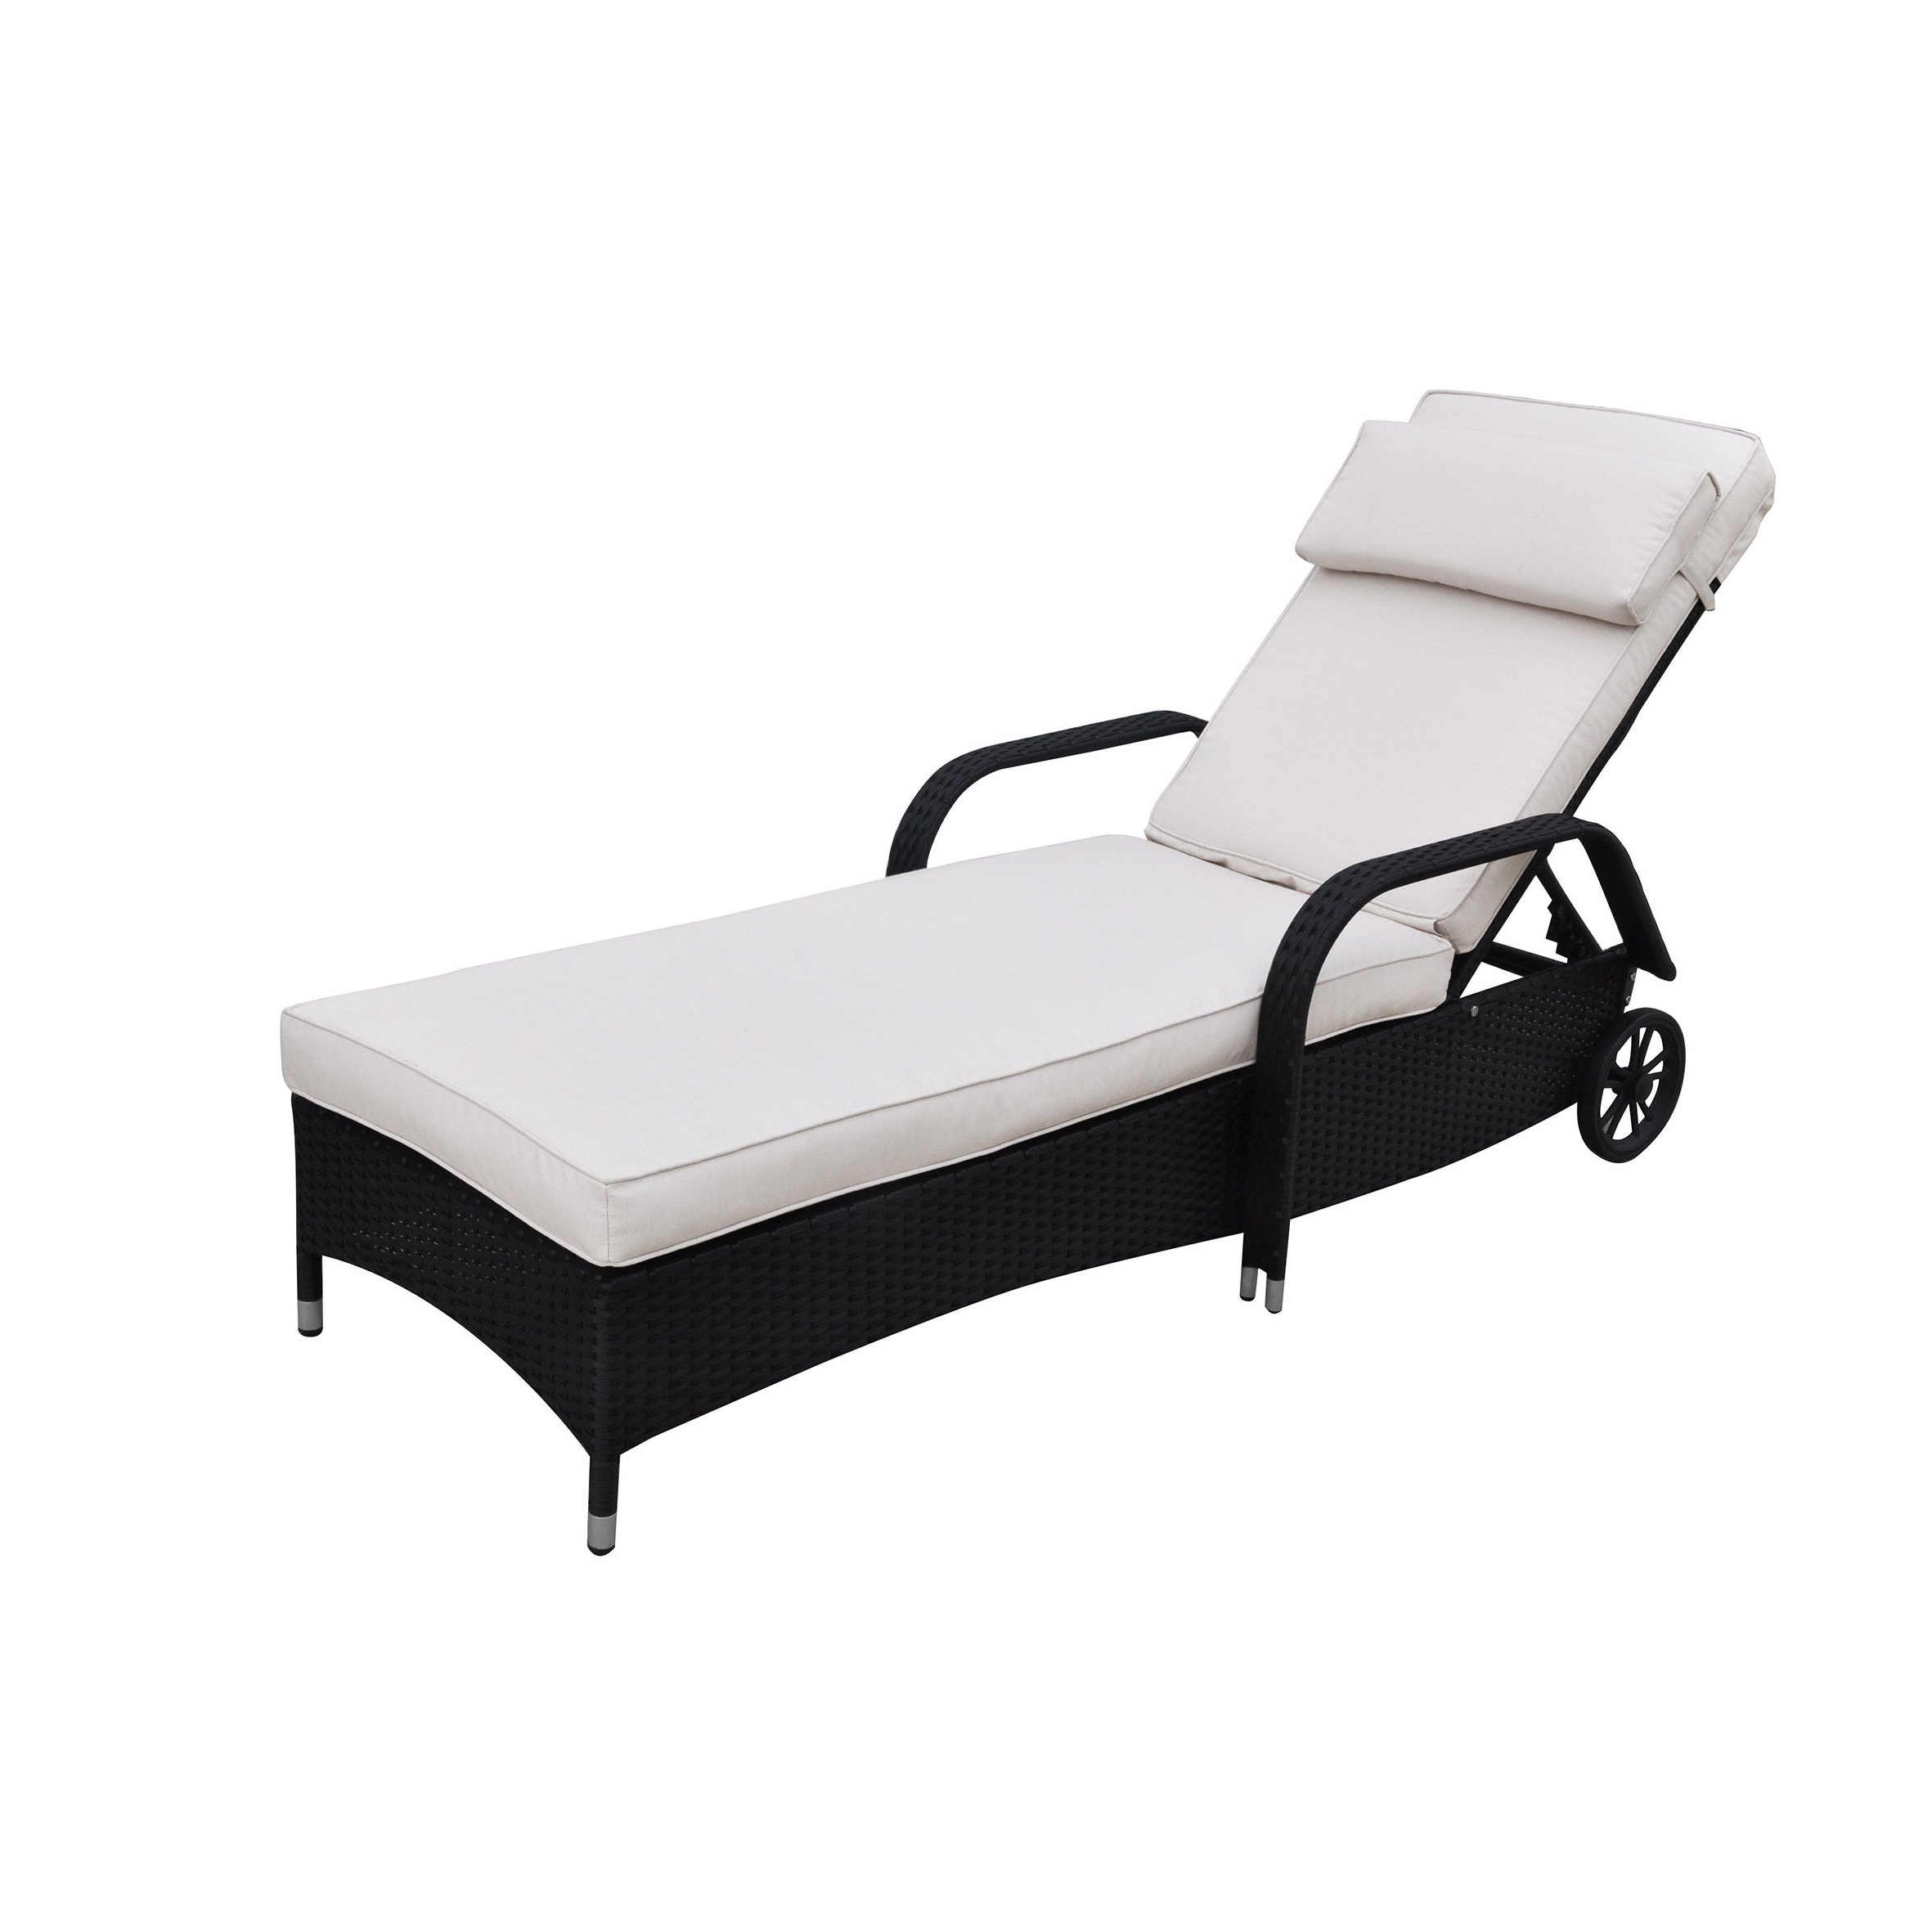 Poundex Lizkona All Weather Single Outdoor Adjustable Lounger Inside Fashionable All Weather Single Outdoor Adjustable Loungers (View 5 of 25)